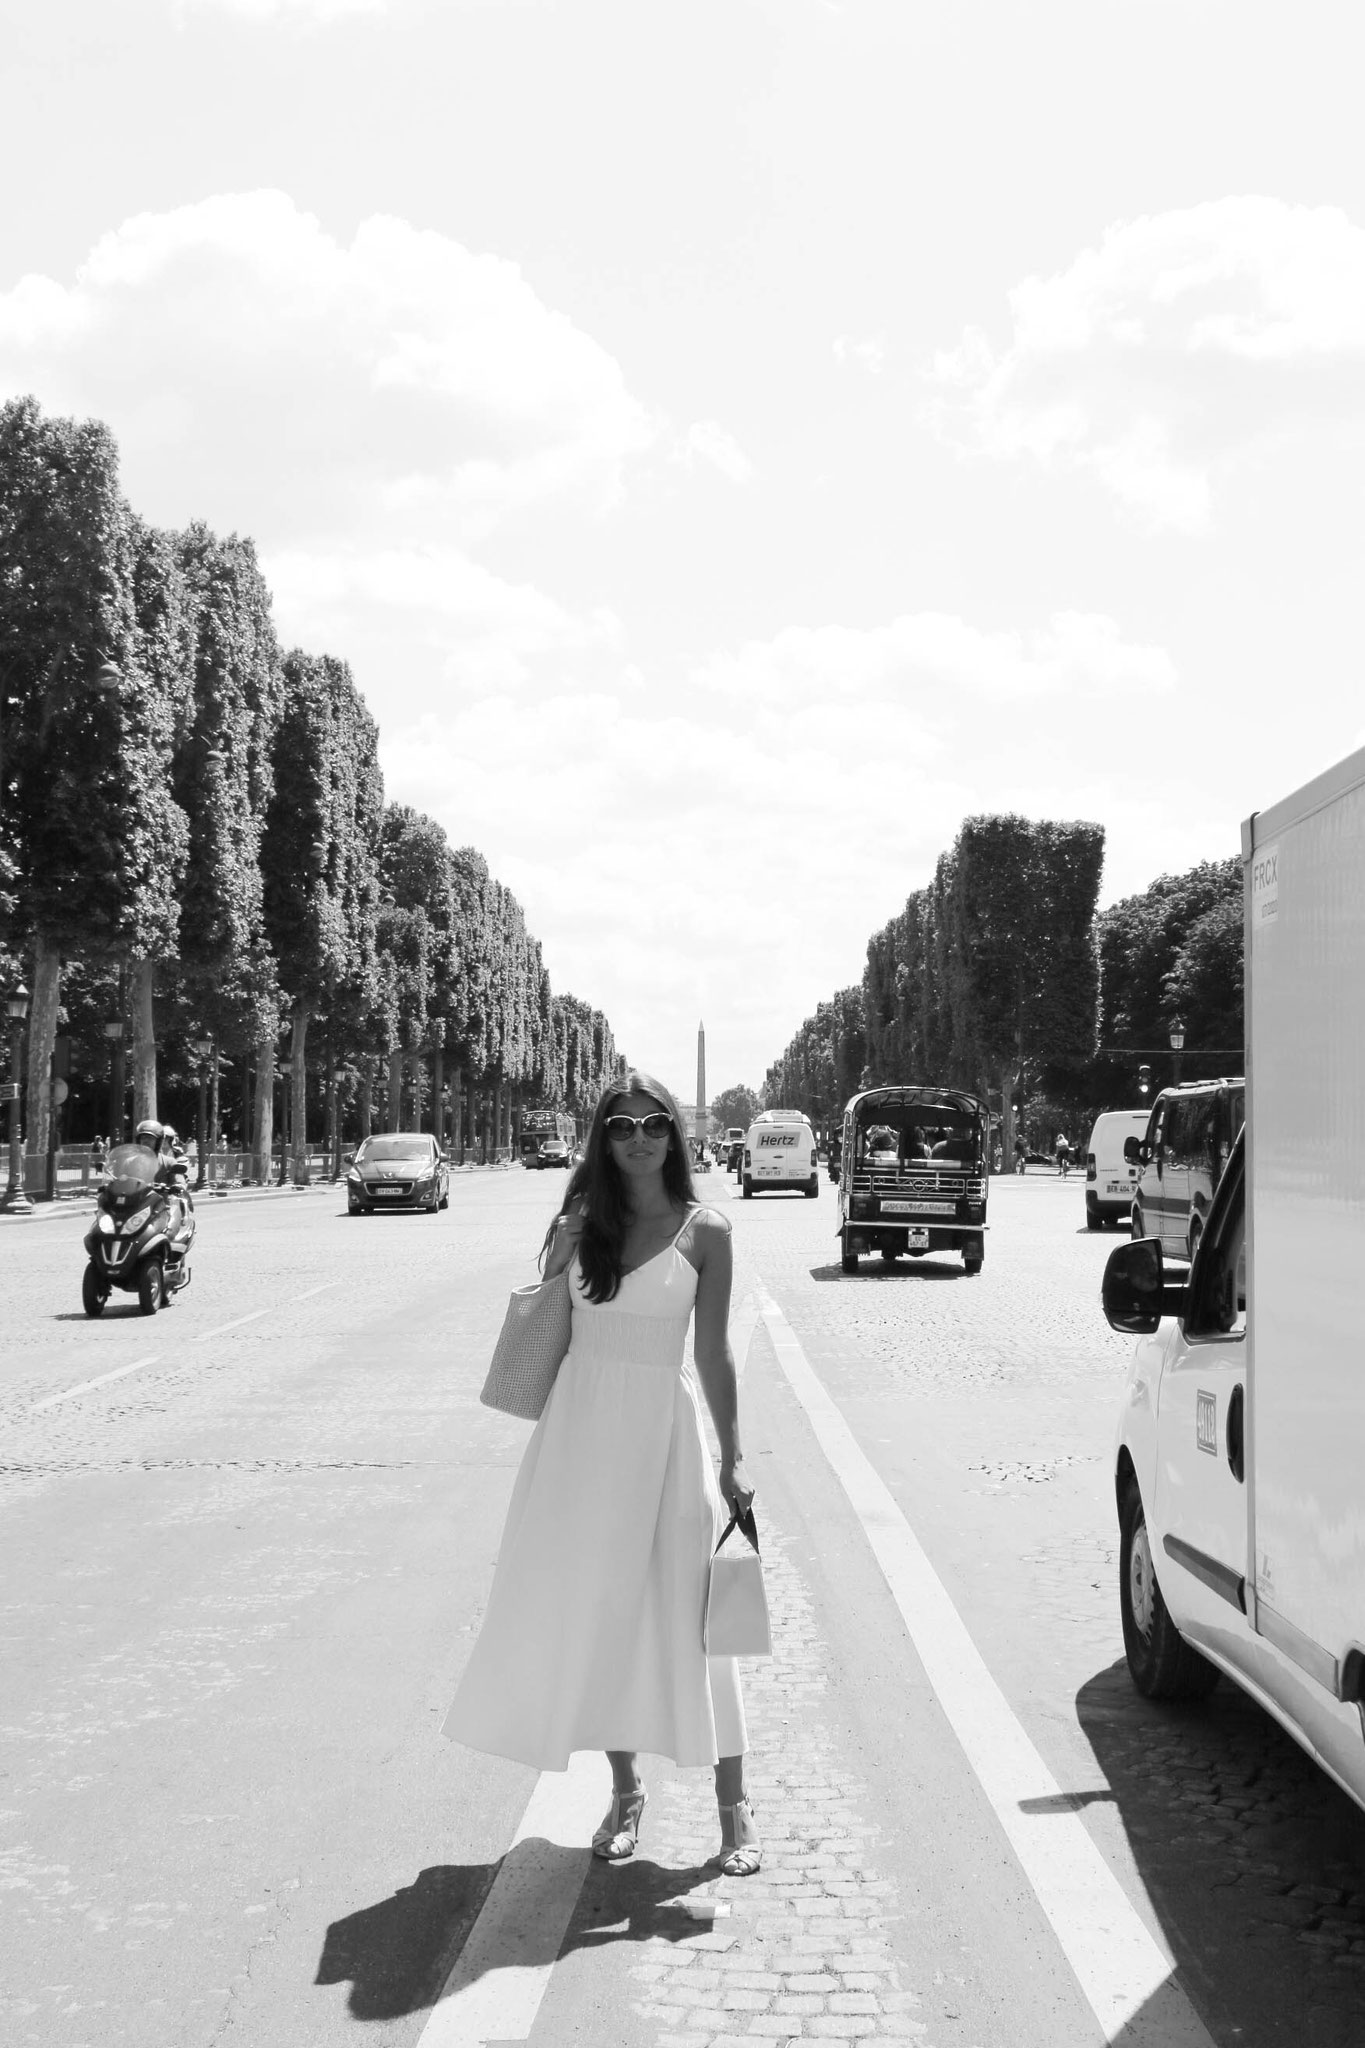 White Dress Paris Champs Elysees, Carmen Schubert